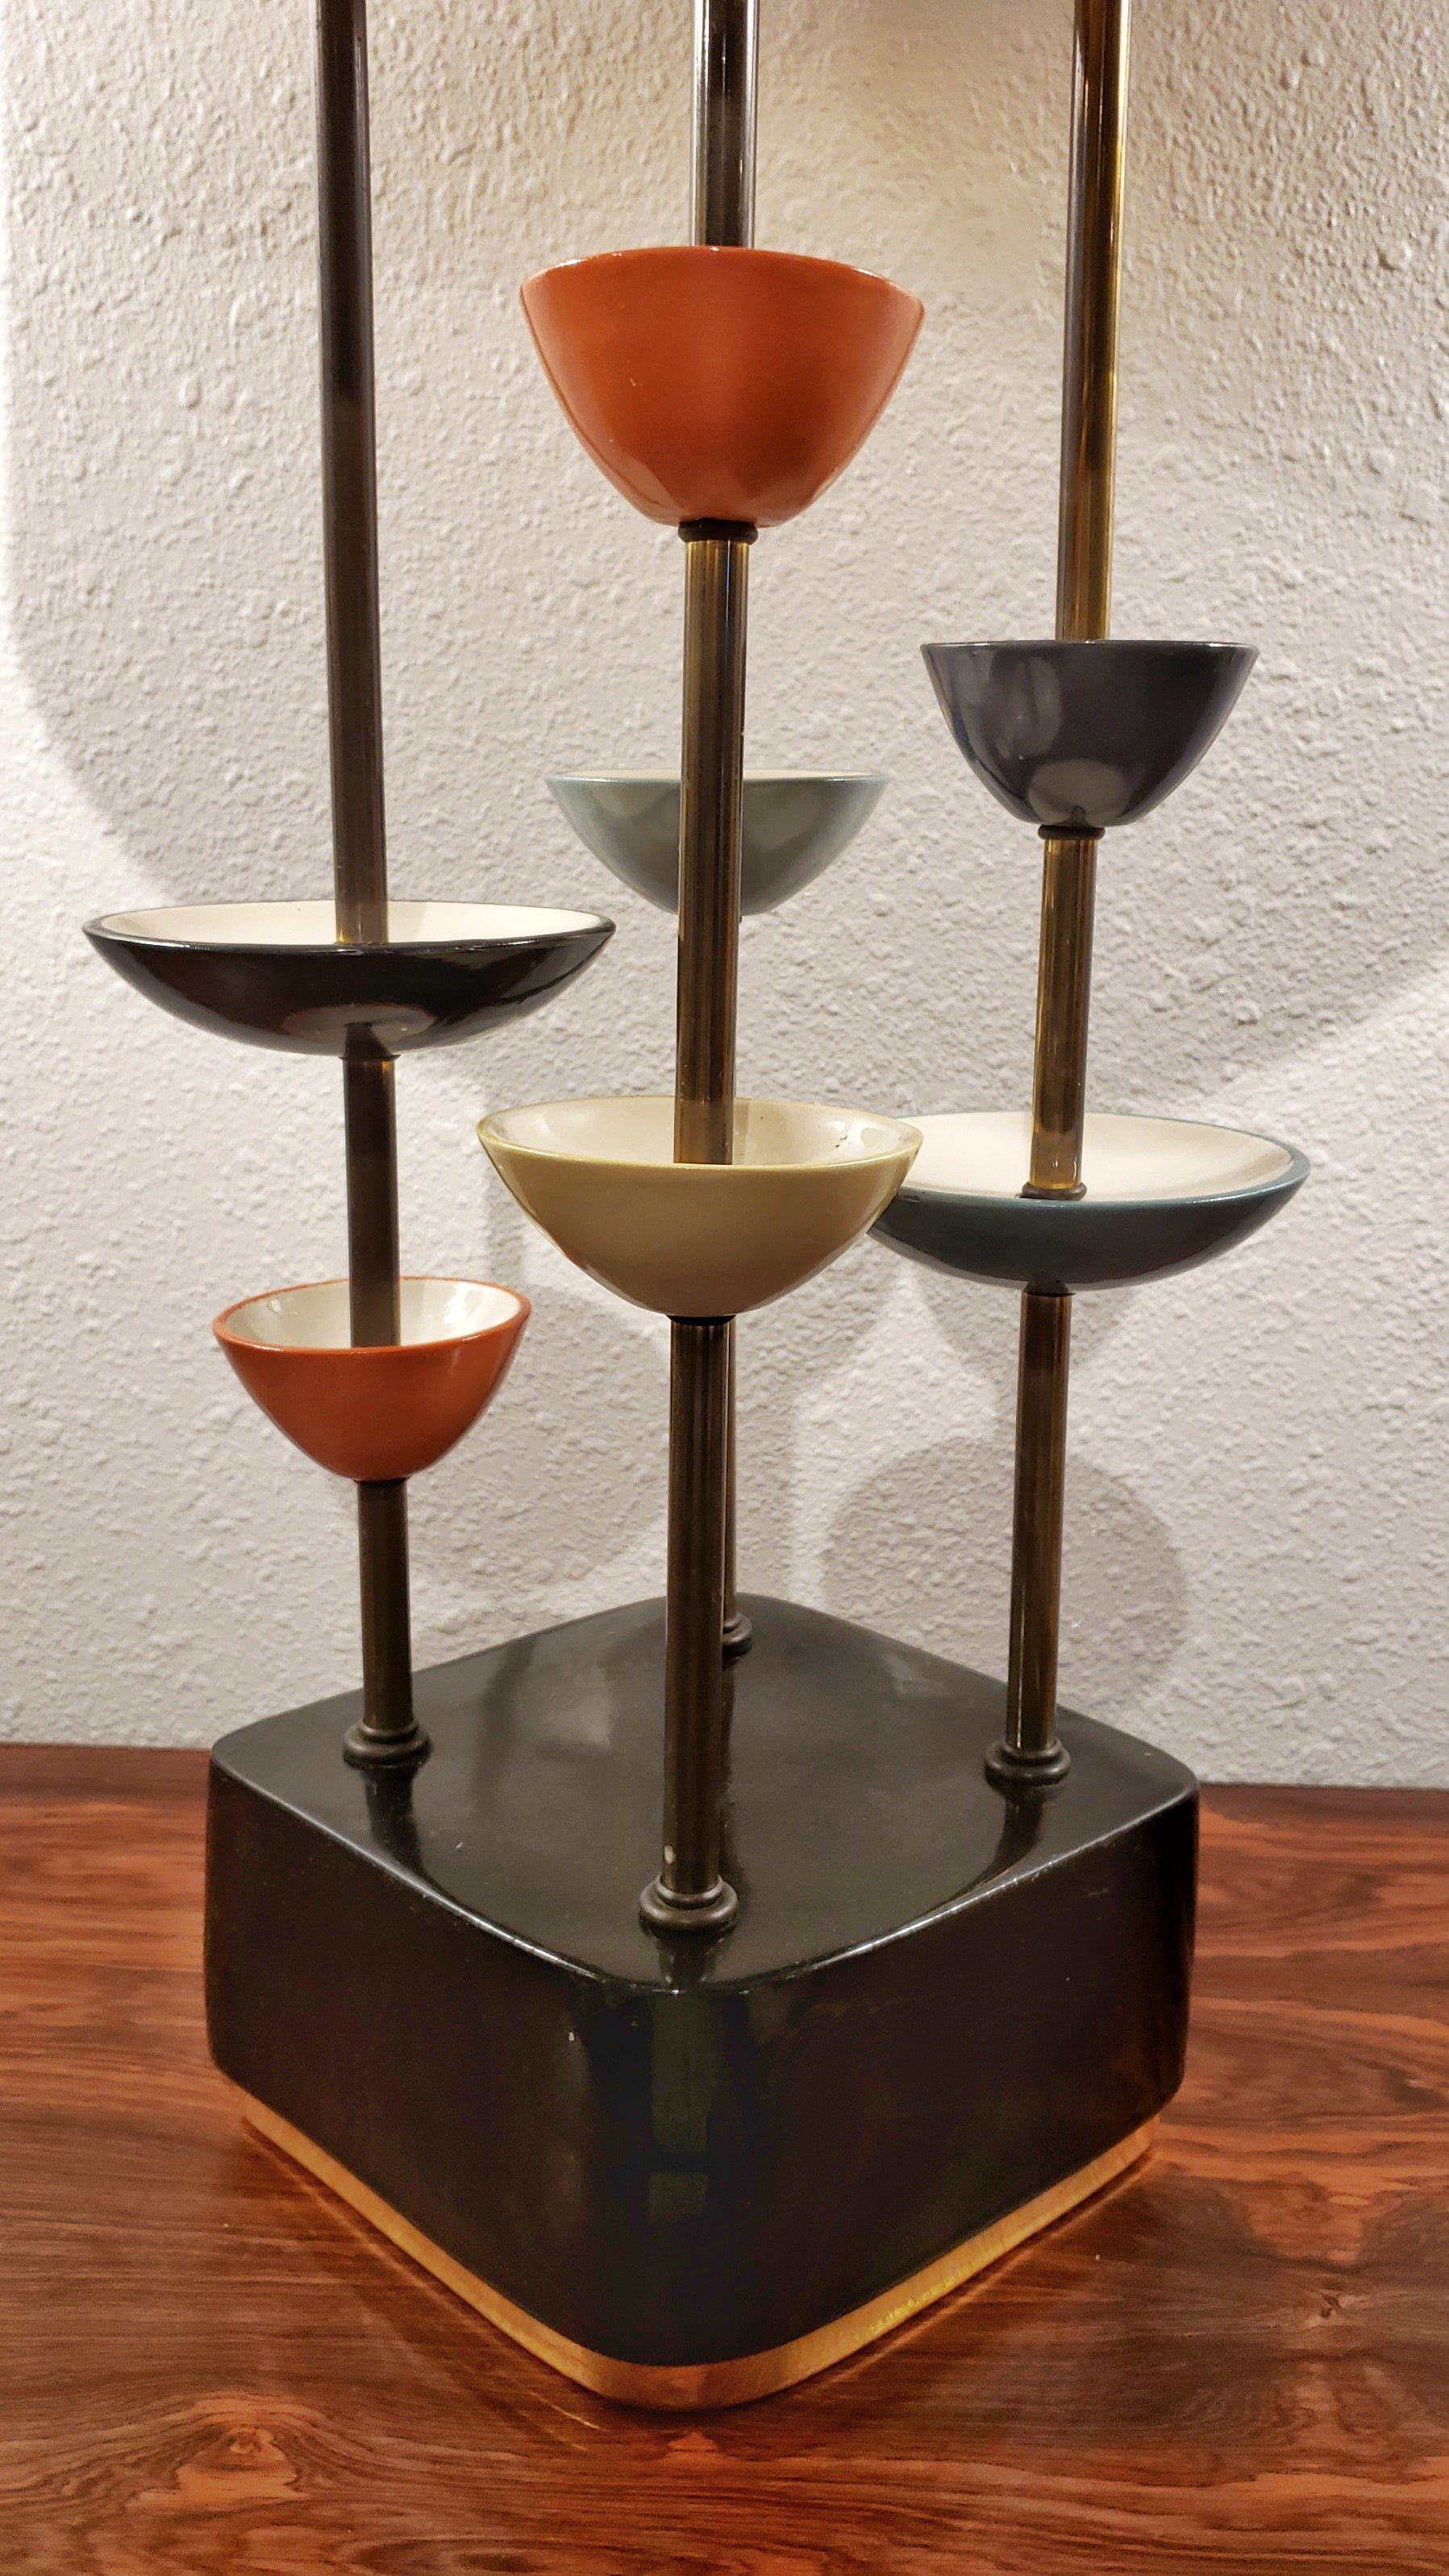 MODERN CERAMIC AND BRASS TABLE LAMP IN THE STYLE OF JOUVE